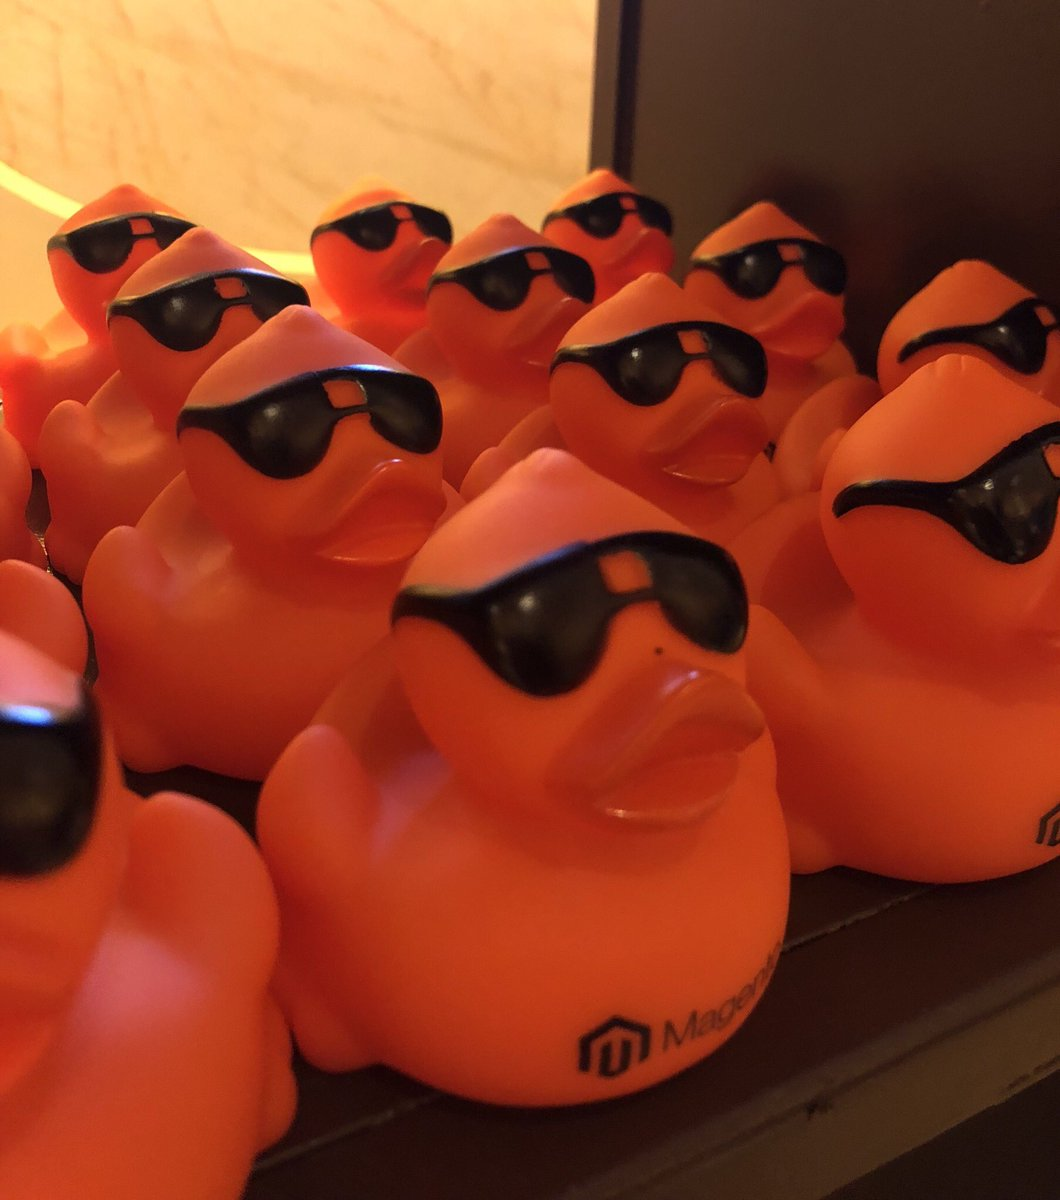 Yennyontheblock: The gangs all here! #MagentoImagine  #quackquack https://t.co/rnHPeKNolA